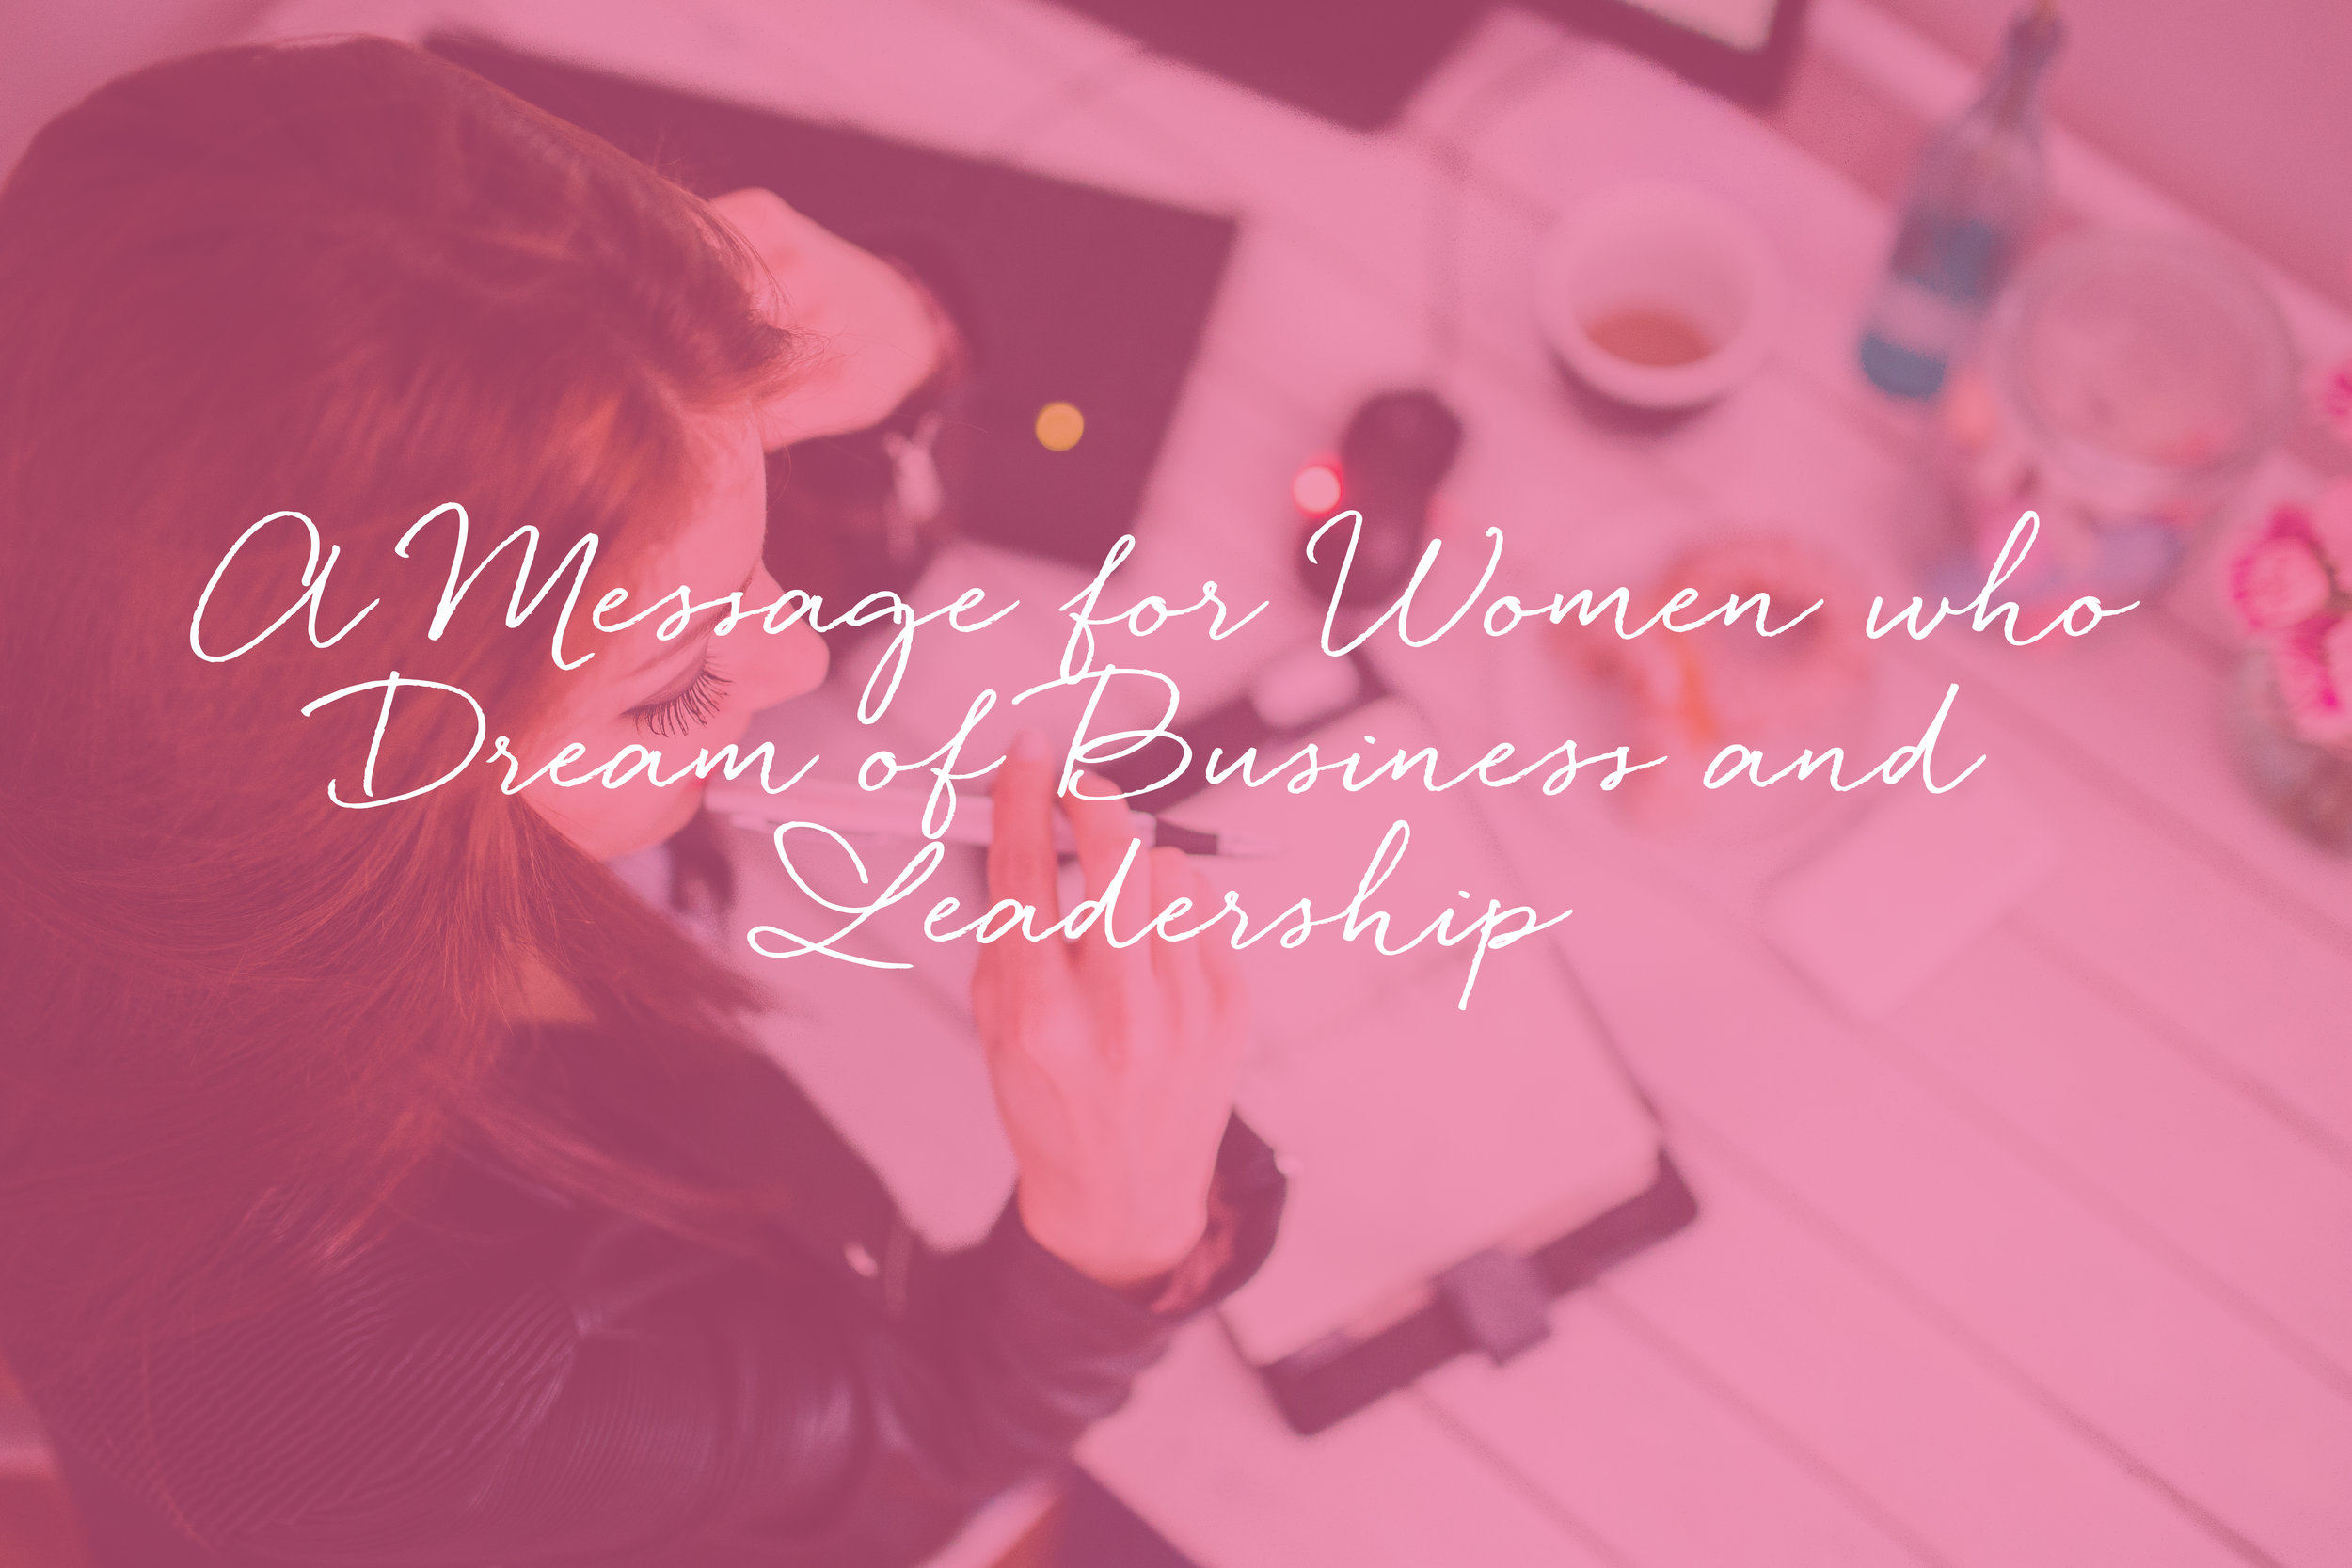 A-Message-for-Women-who-Dream-of-Business-and-Leadership-2.jpg